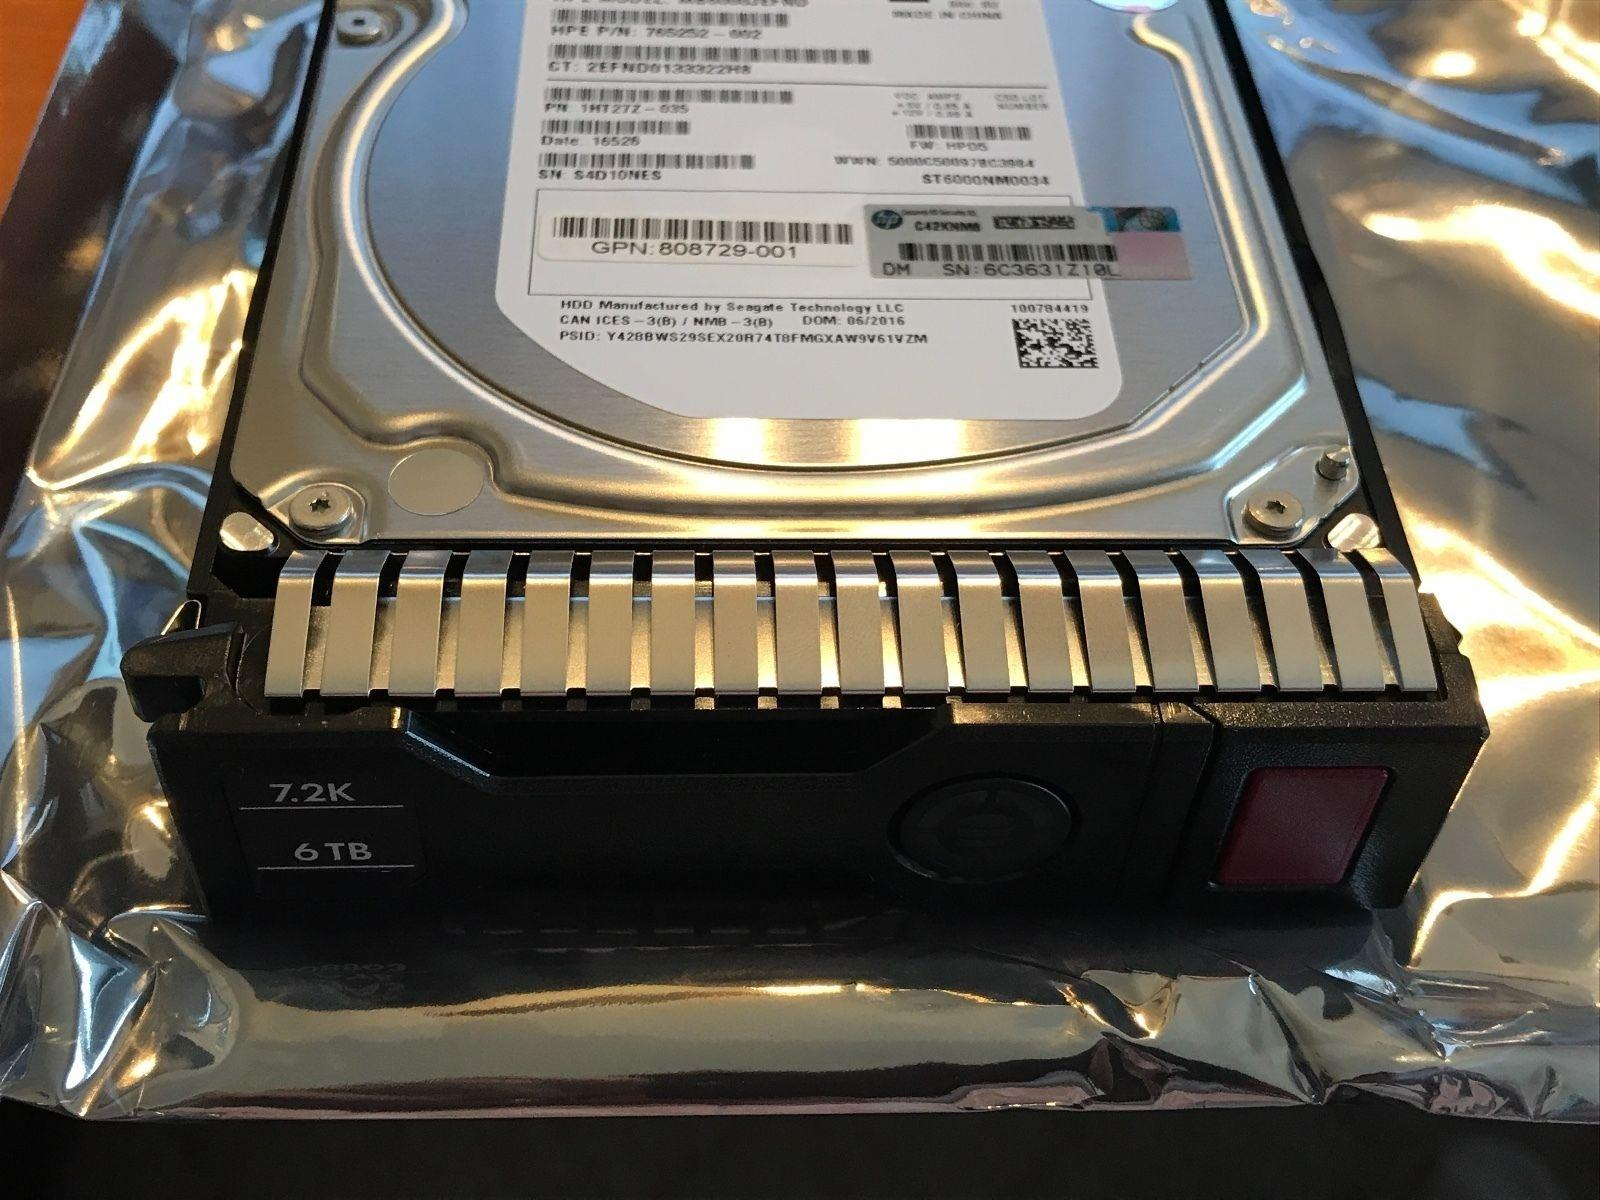 Hpe 846608-001 6tb 7200rpm 35 Inch Lff Sata-6gbps Midline Sc Hot Swap Hard  Drive With Tray Spare